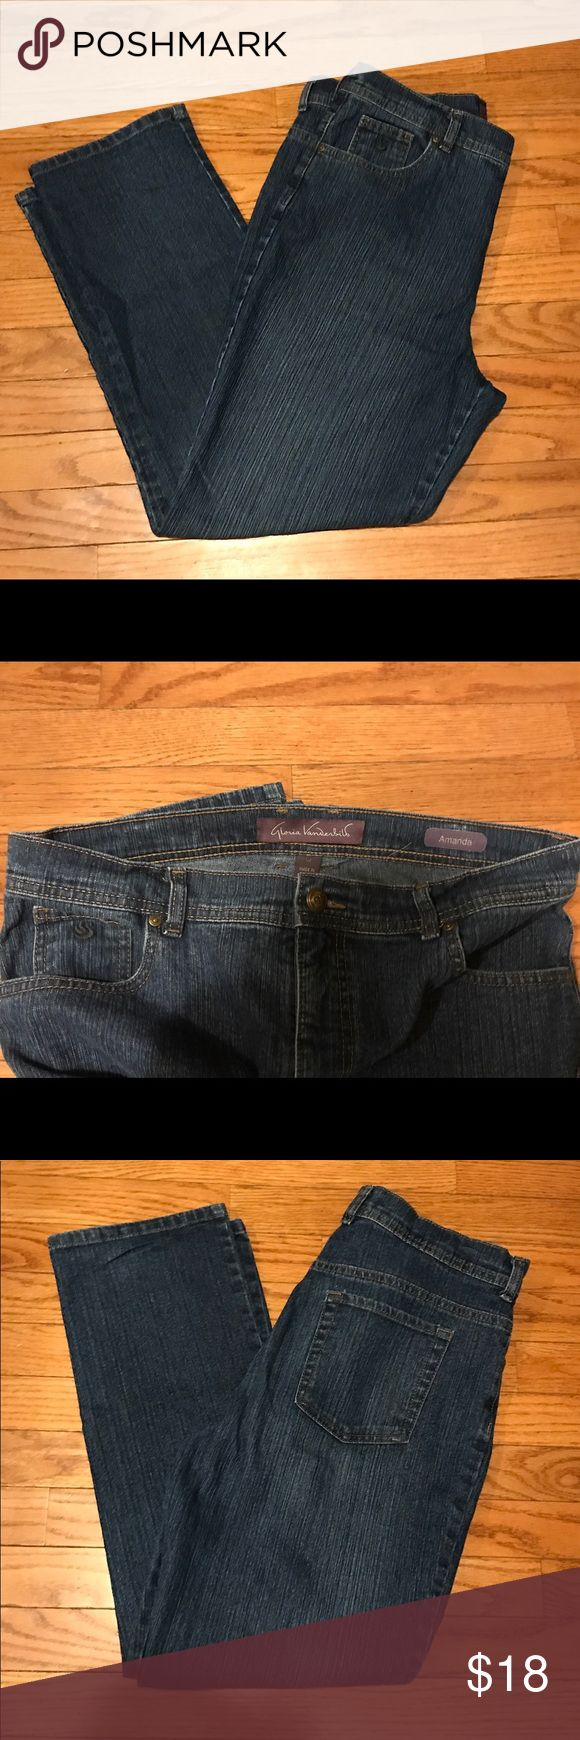 Gloria Vanderbilt Amanda Jeans size 14 Petite Gloria Vanderbilt Amanda Jeans size 14P.  Like condition except for some slight wear on the very bottom where jeans might touch the ground. Smoke free home. Gloria Vanderbilt Jeans